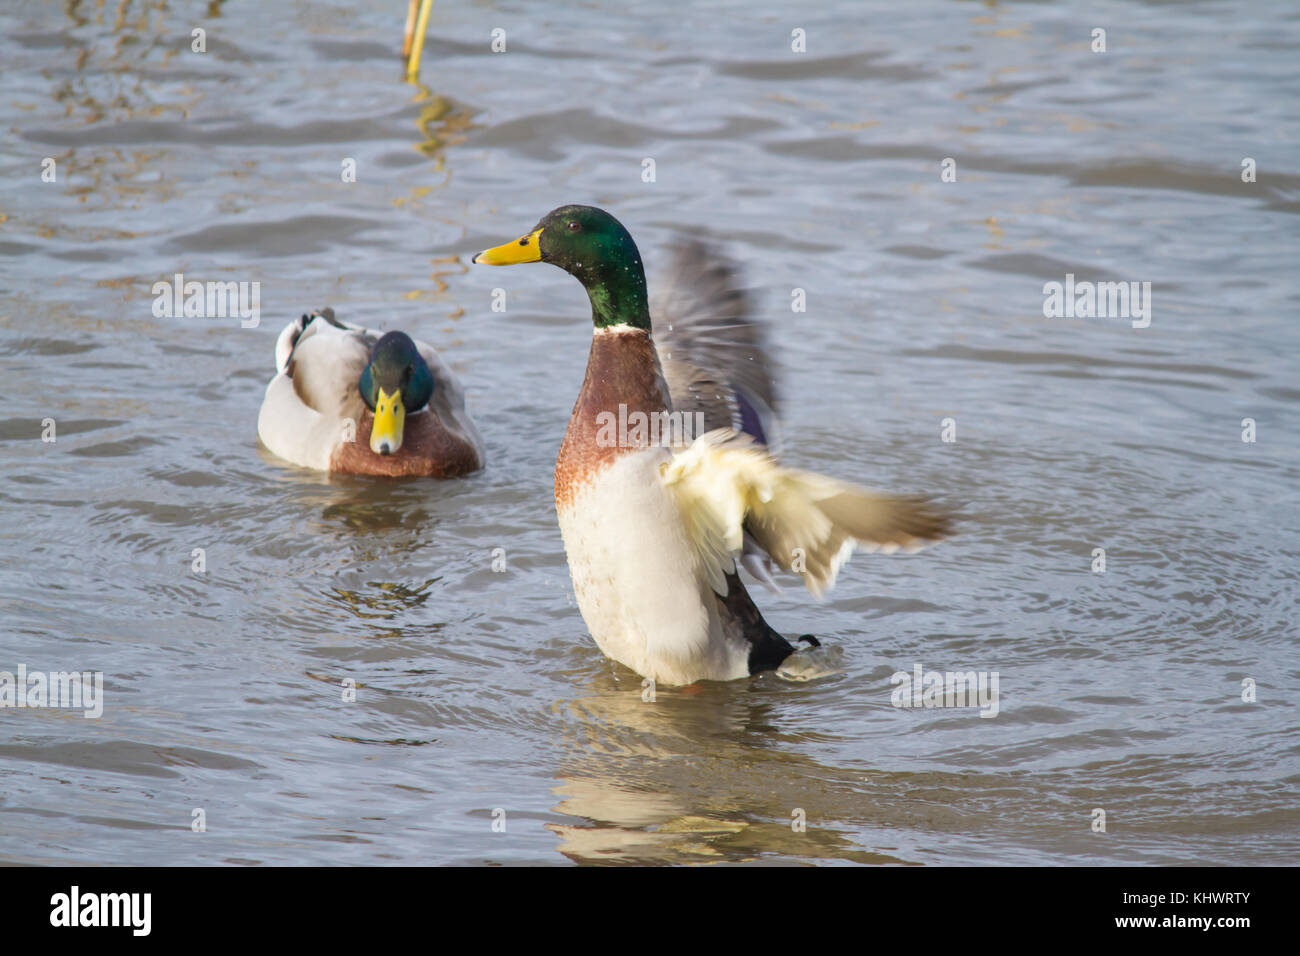 Two male Mallards (Anus platyrhynchos) on a pool in autumn with one raising up and flapping its wings. Stock Photo